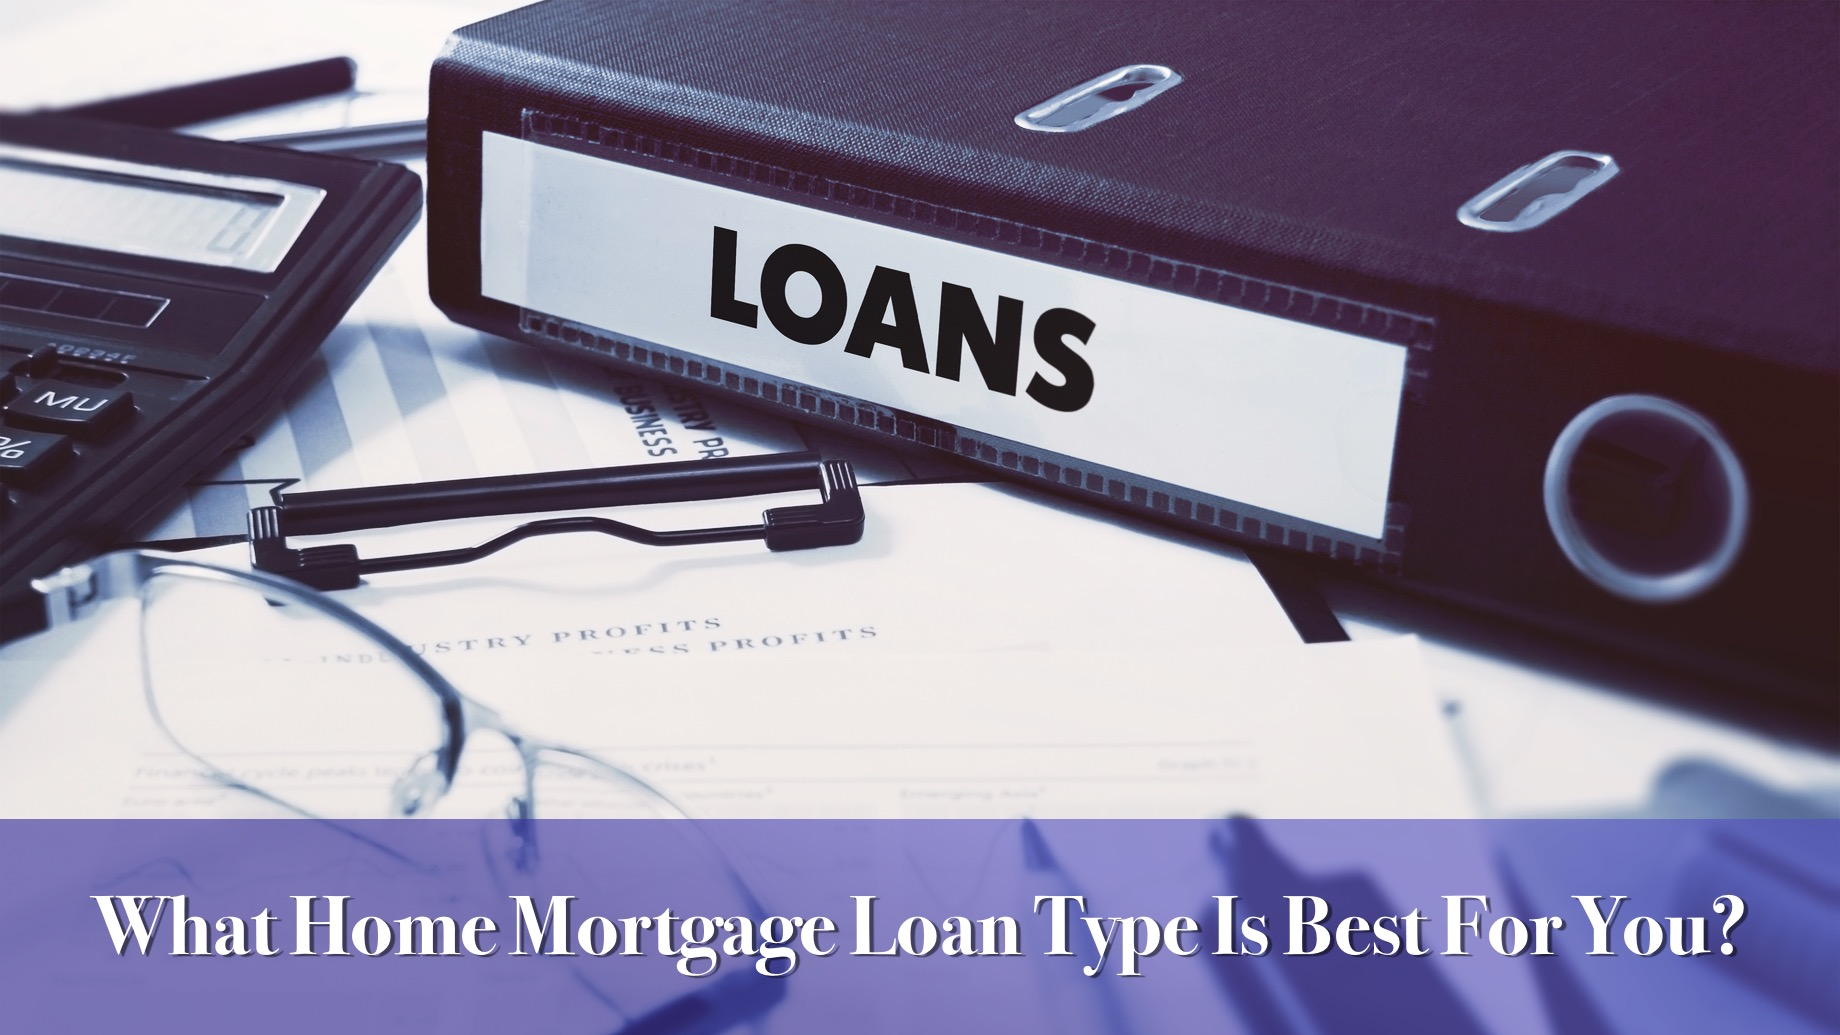 What Home Mortgage Loan Type Is Best For You?